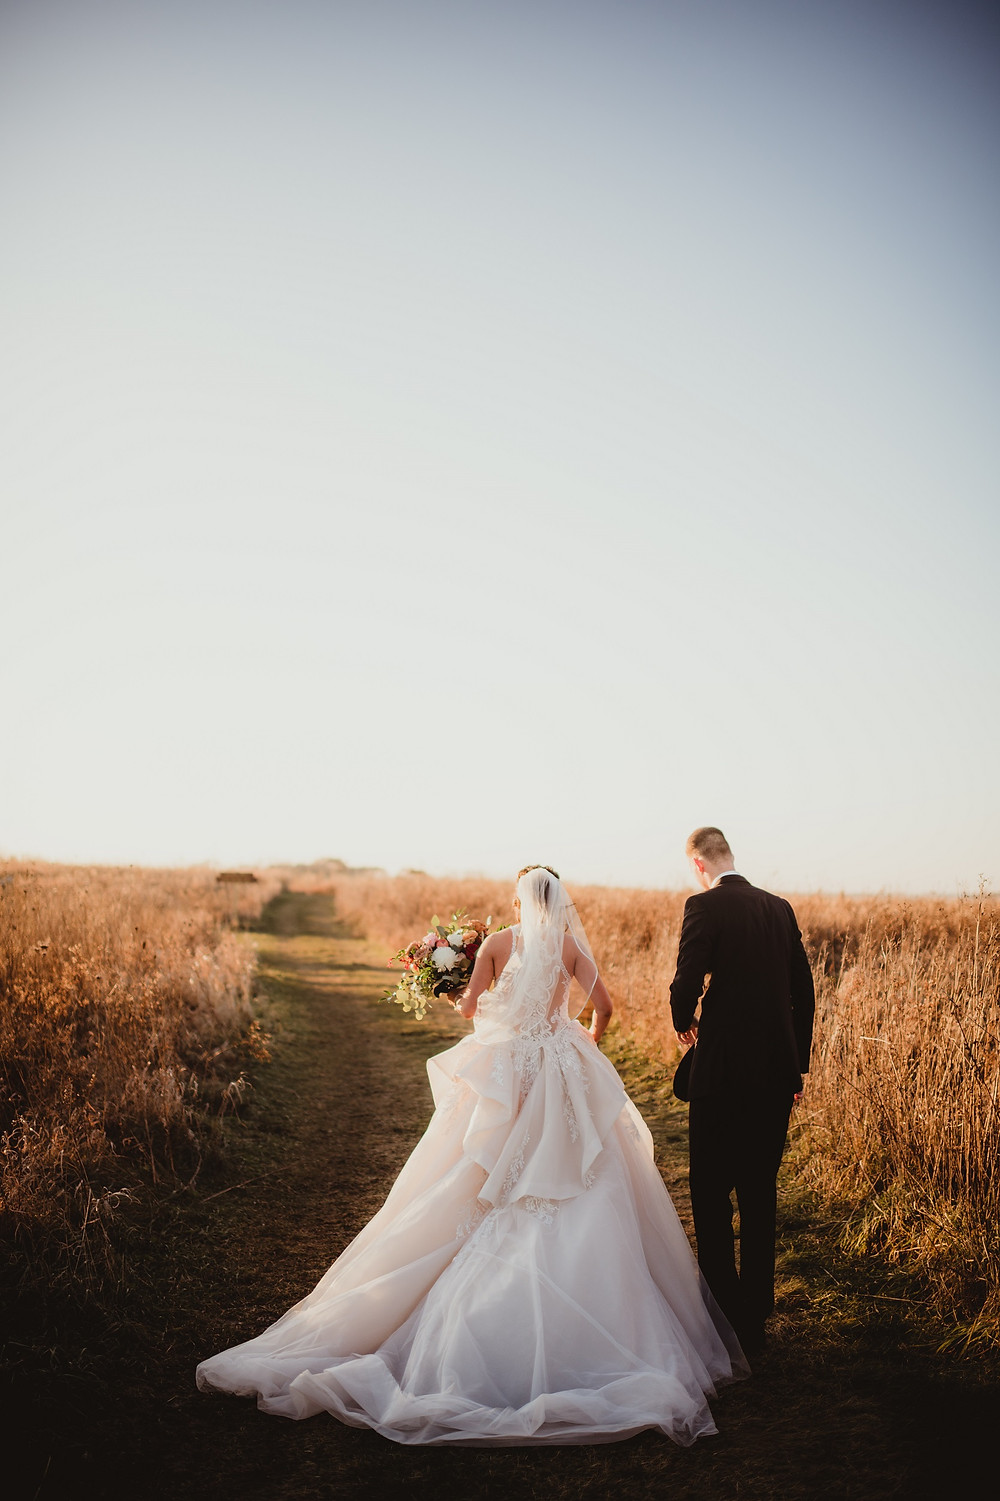 bride in elegant bridal gown and groom walking in field at sunset in iowa